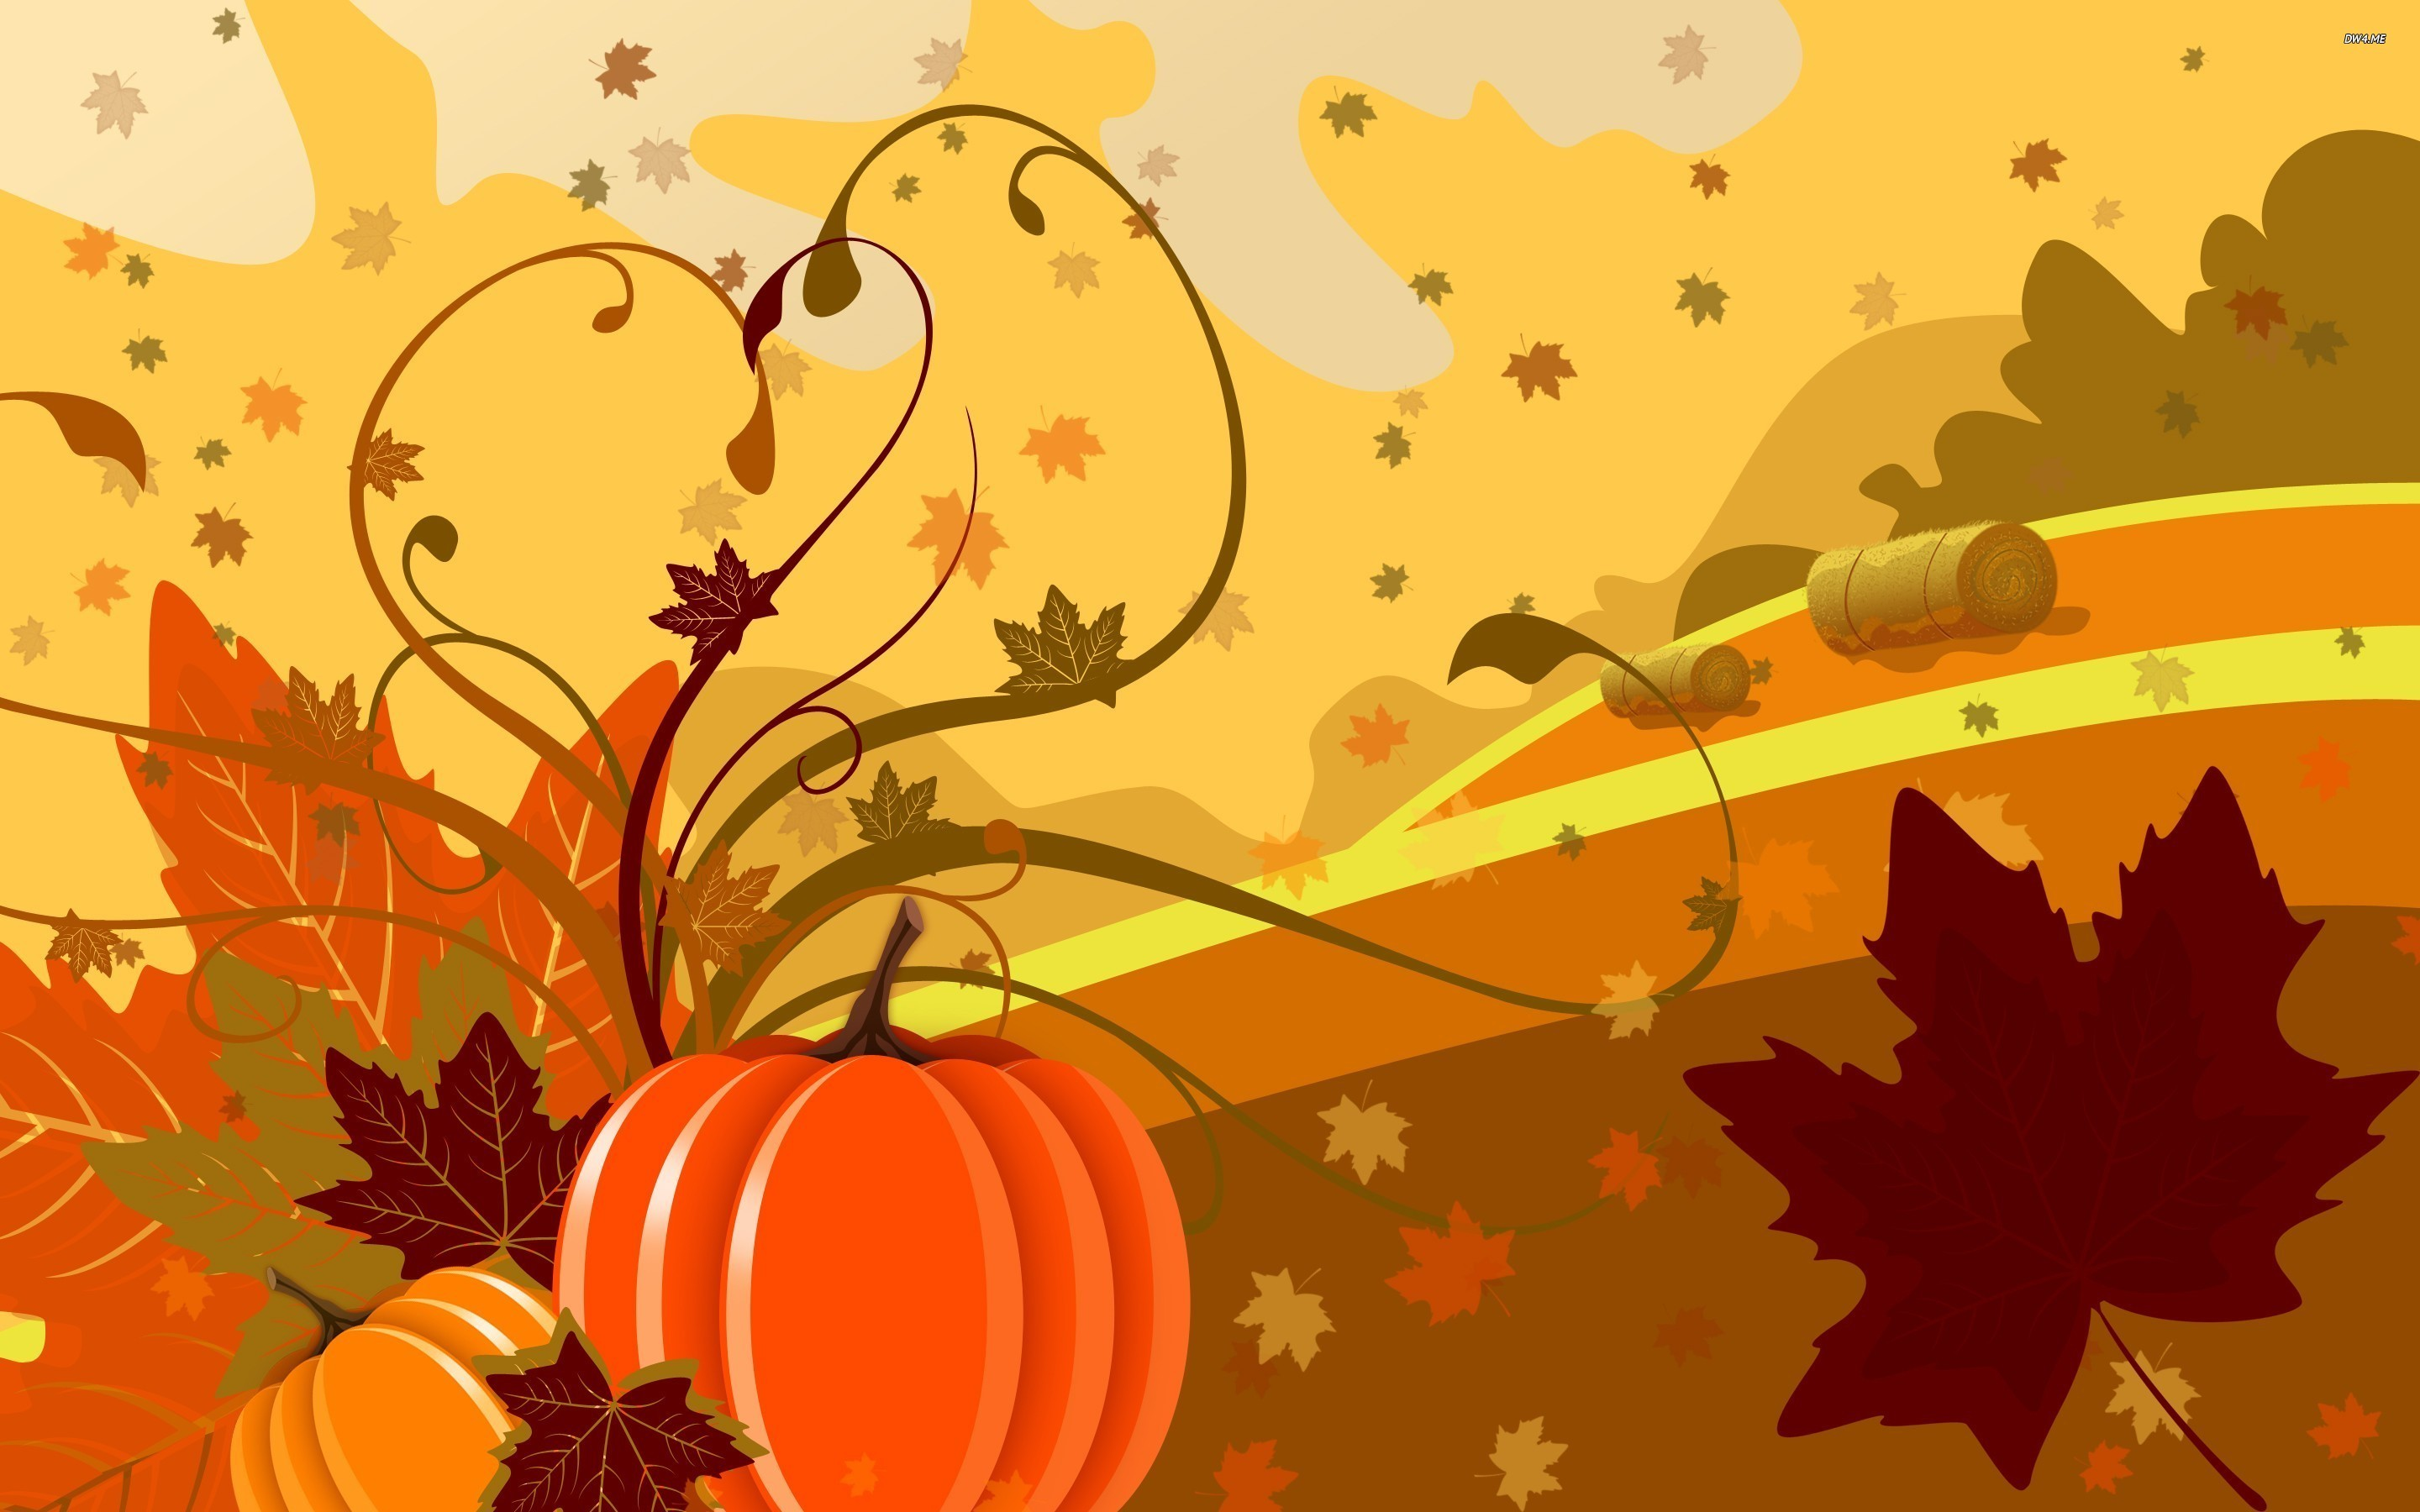 Fall Leaves And Pumpkin Wallpaper Images & Pictures – Becuo